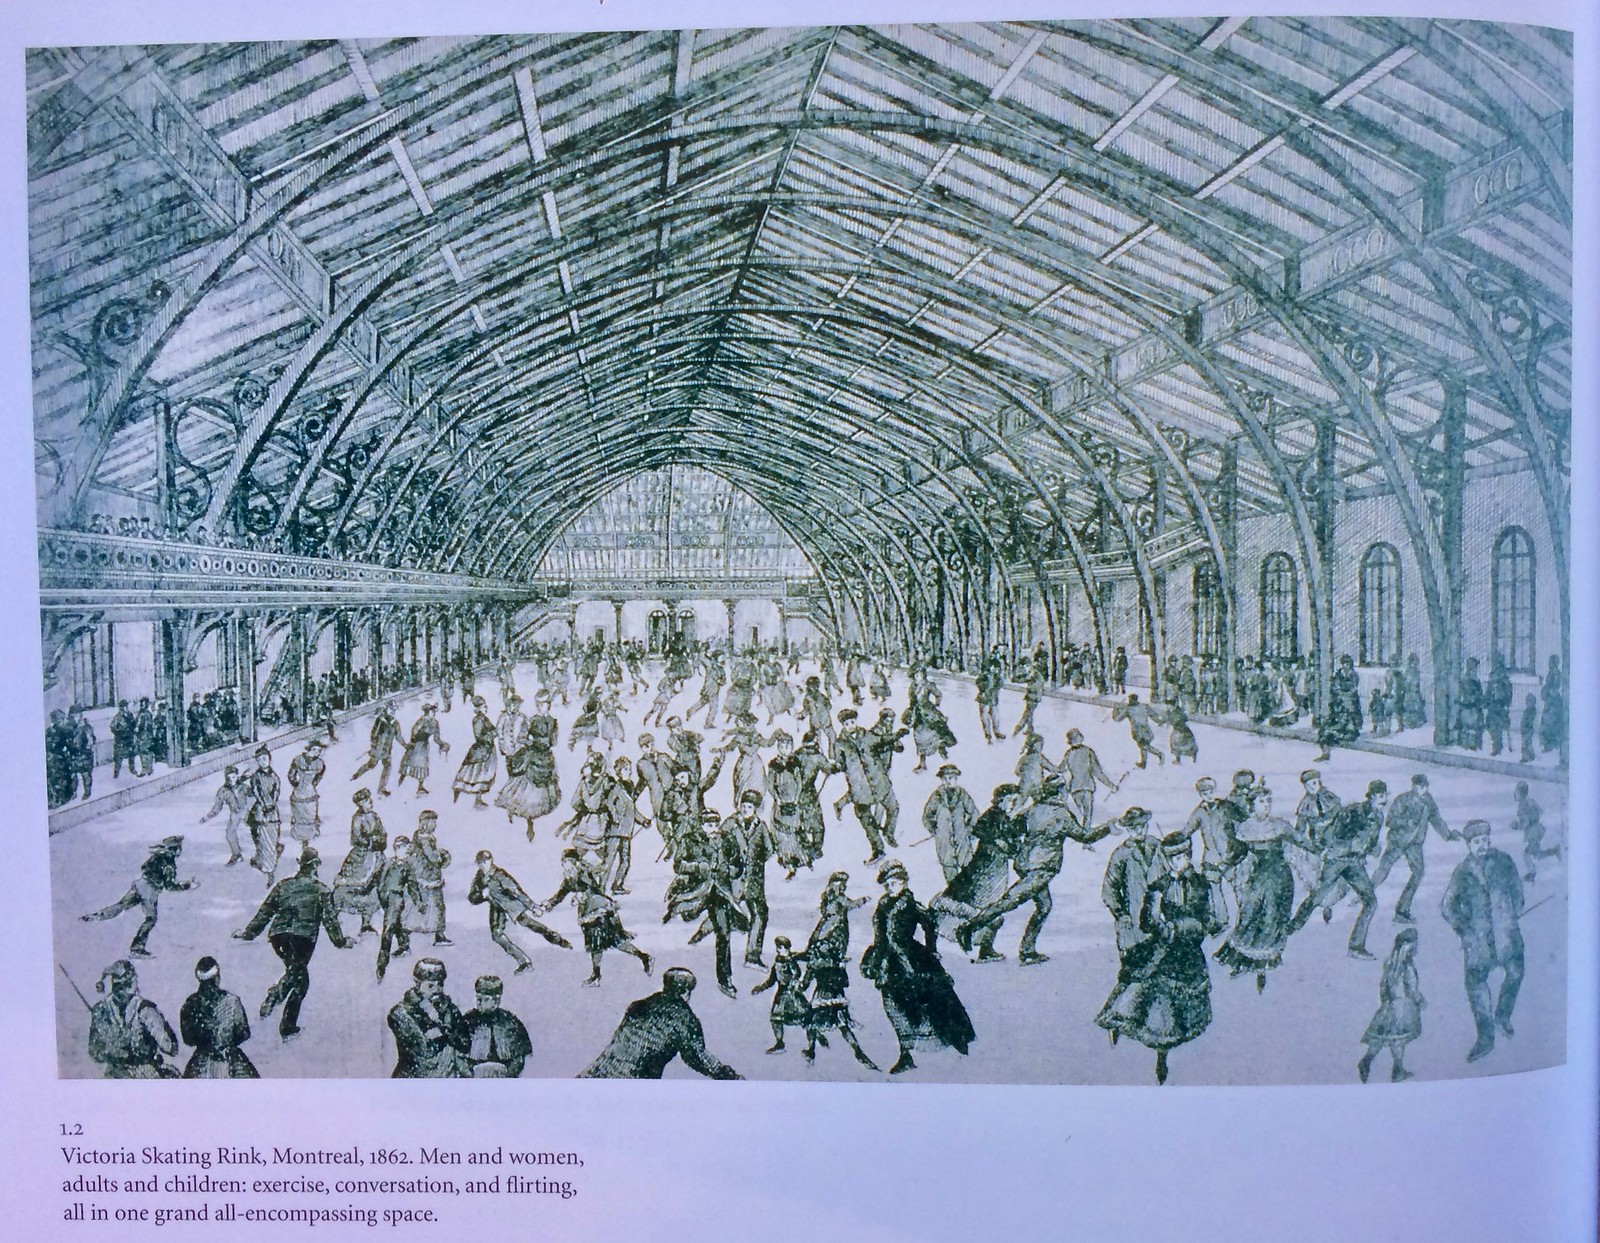 Roller skating rink oakville - Check Out For Example This 1862 Illustration Of Victoria Skating Rink In Montreal For All The Images That Follow You Can Click To Enlarge